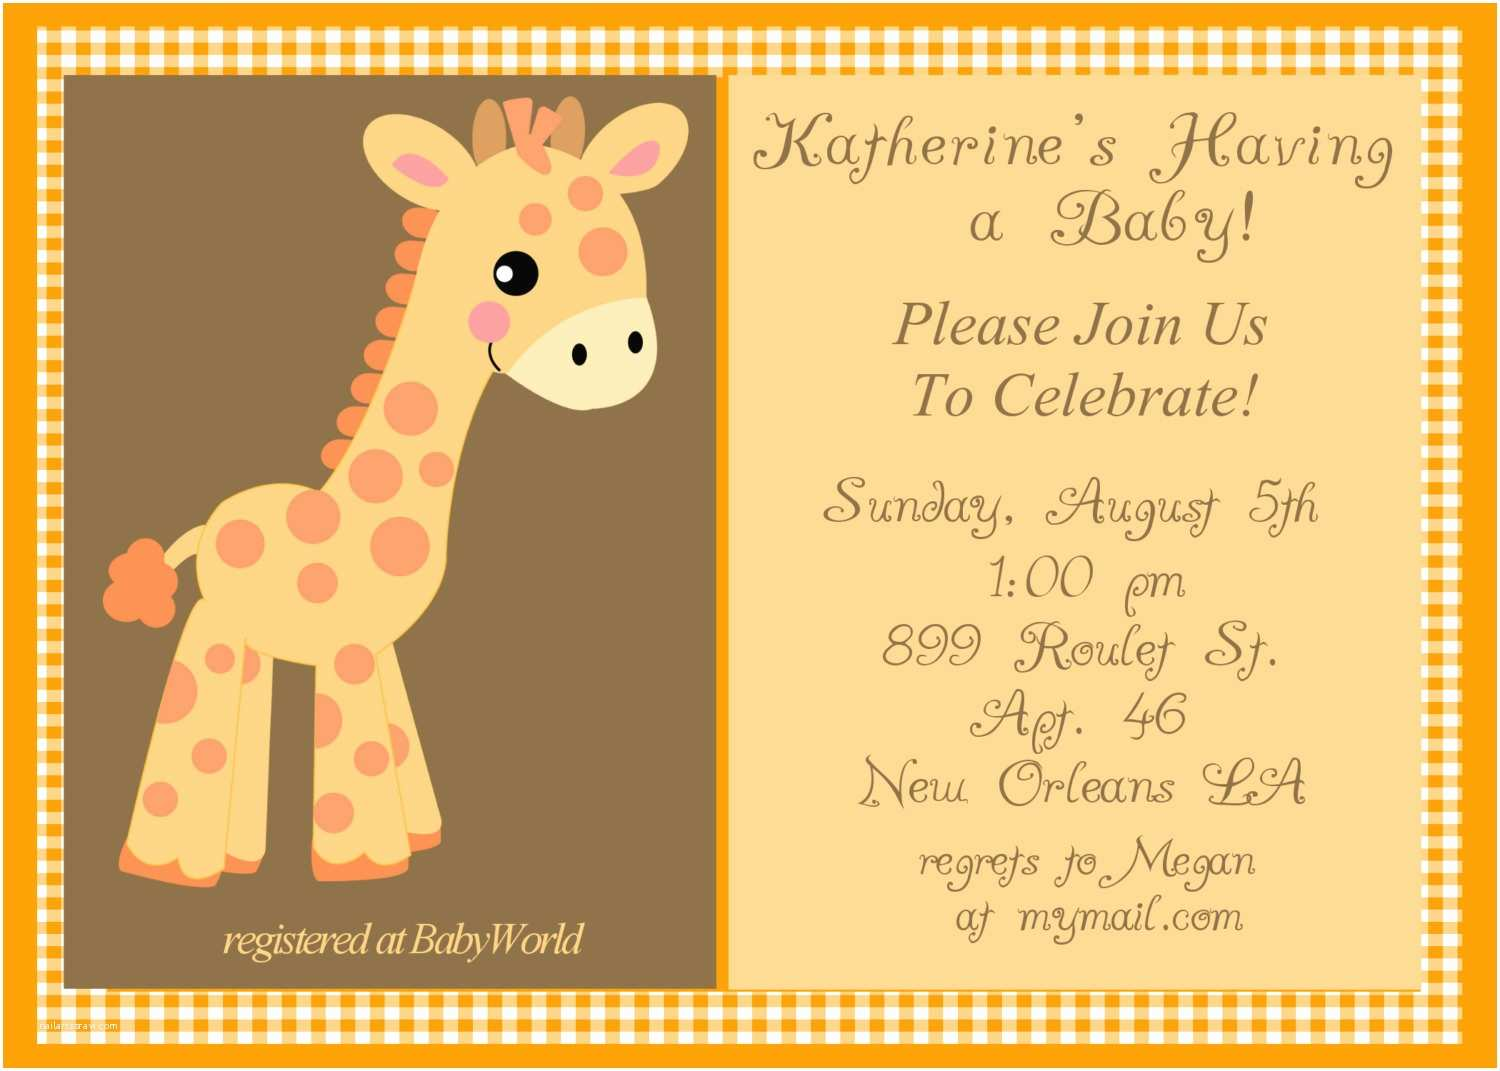 Giraffe Baby Shower Invitations Design Giraffe Baby Shower Invitations Girl Giraffe Baby